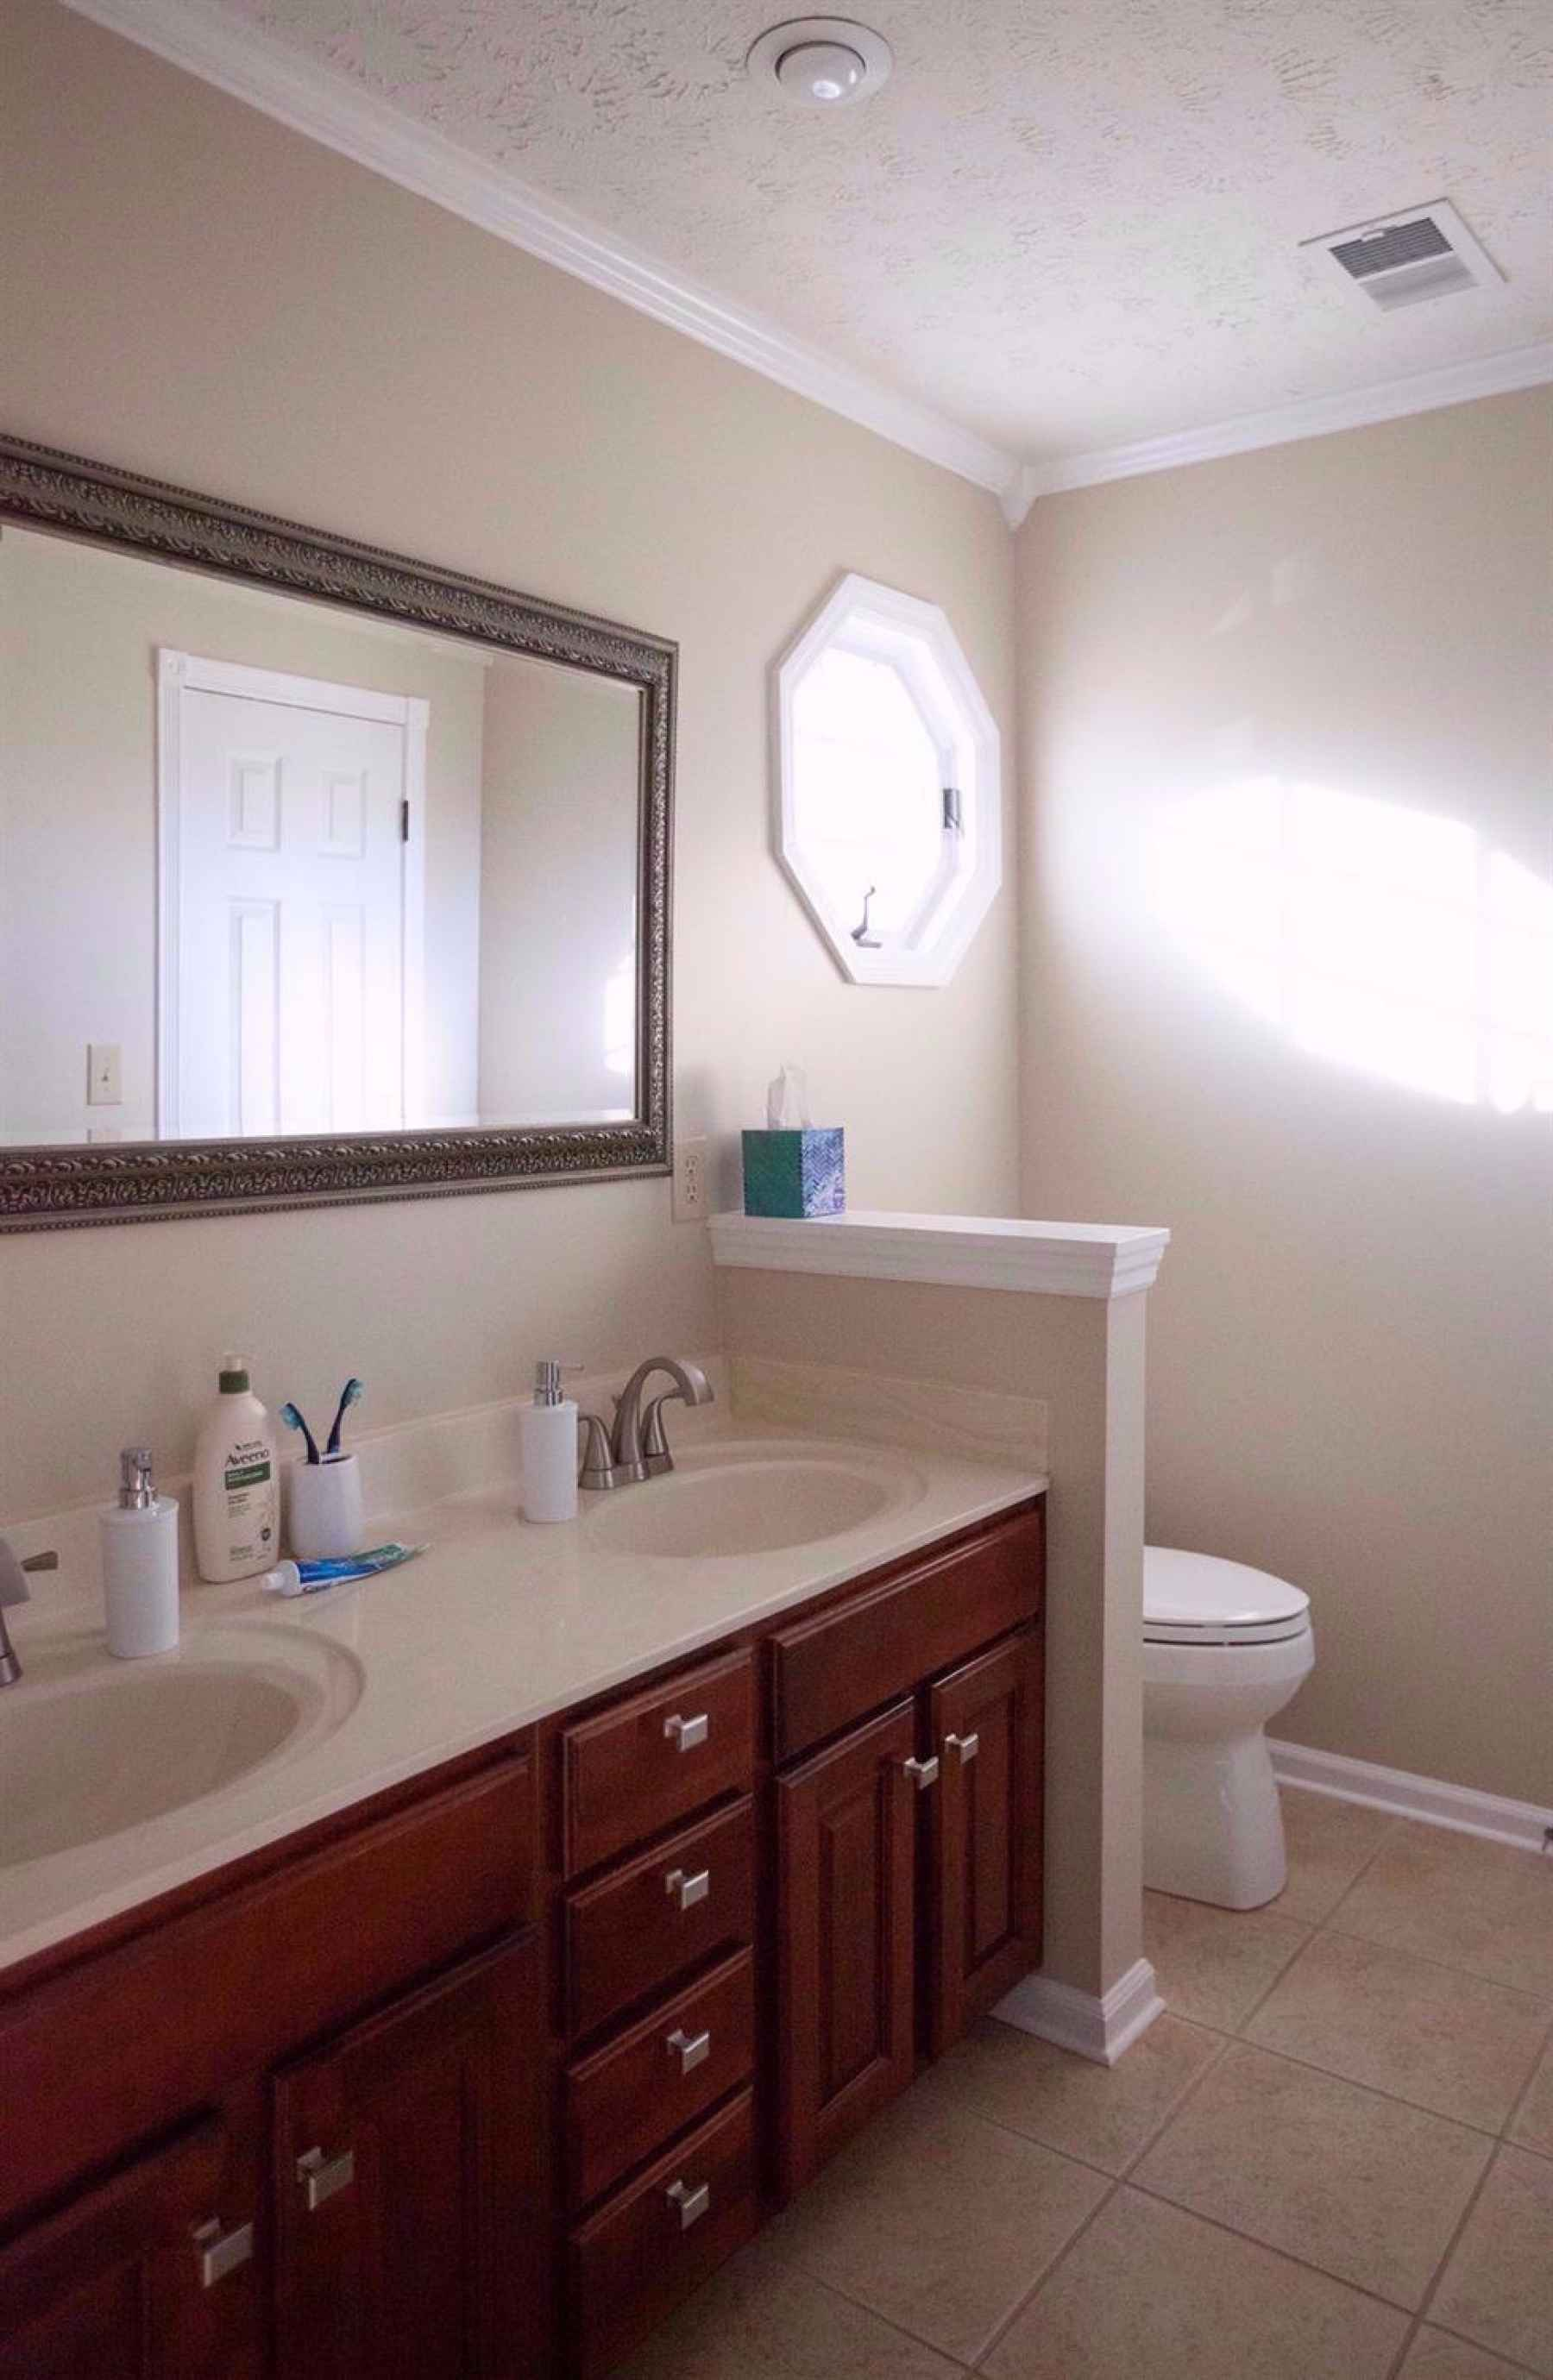 Master Bath with a tiled floor, double sink and retractable octagonal window.